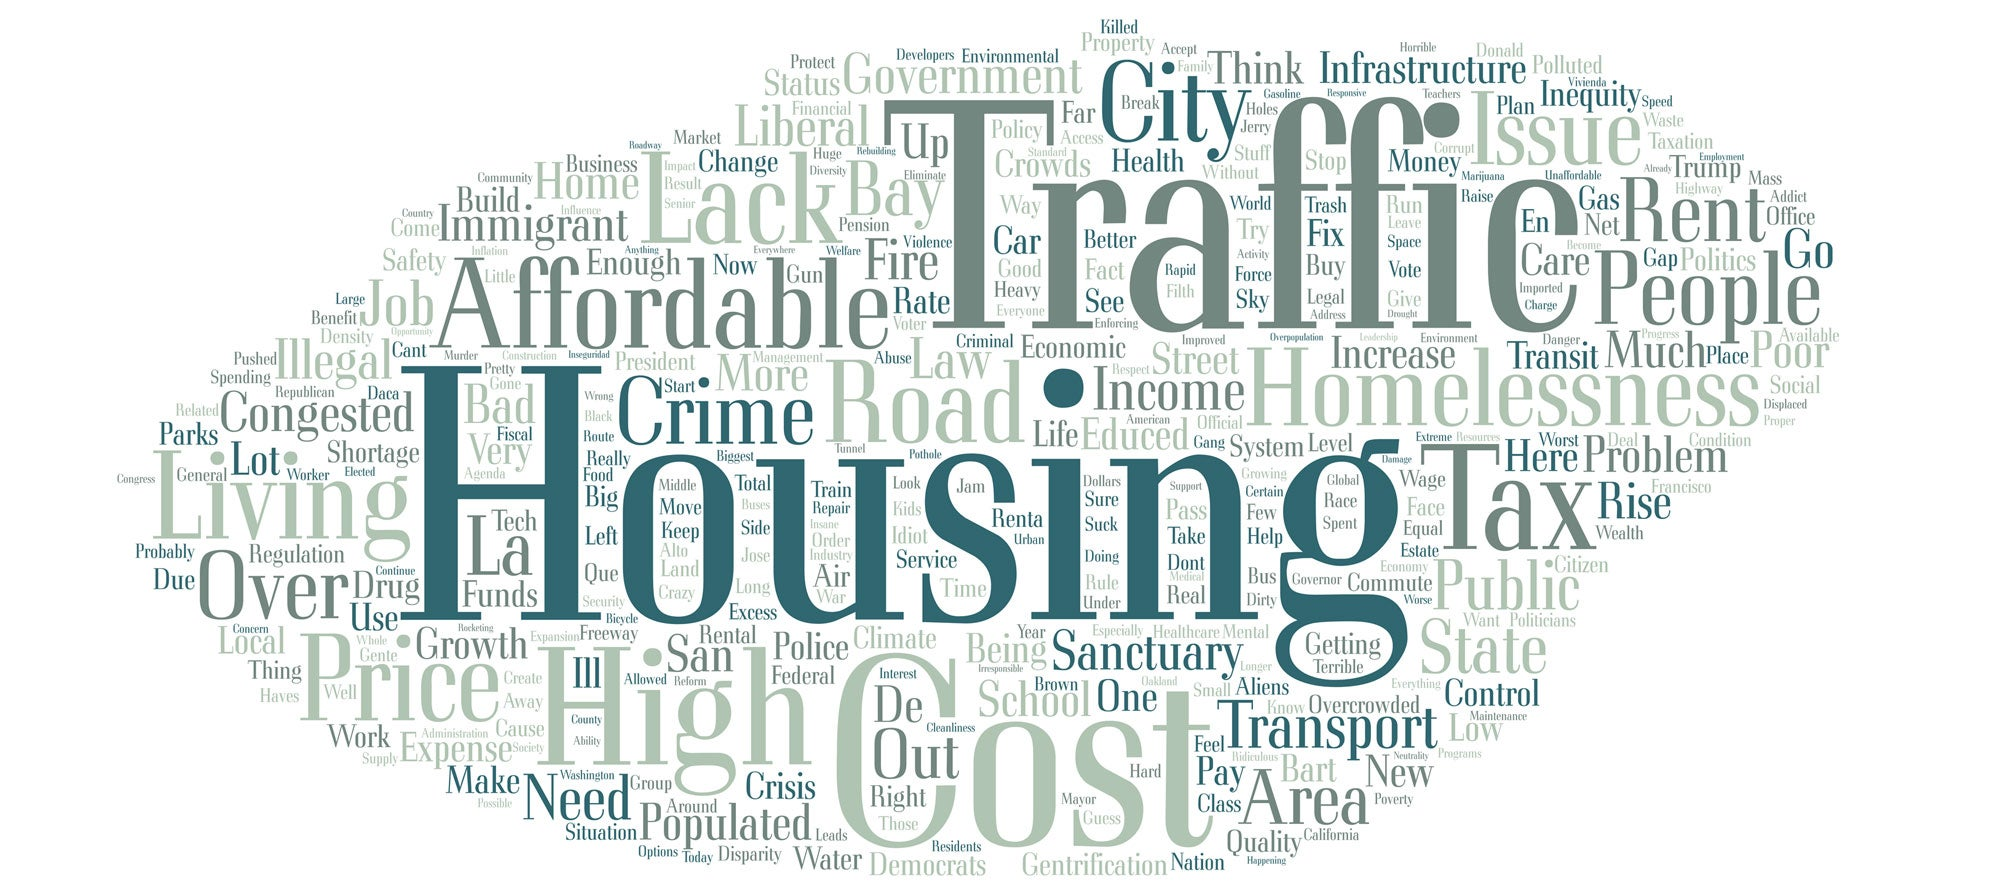 New Poll Shows Strong Support for Housing, Traffic Relief